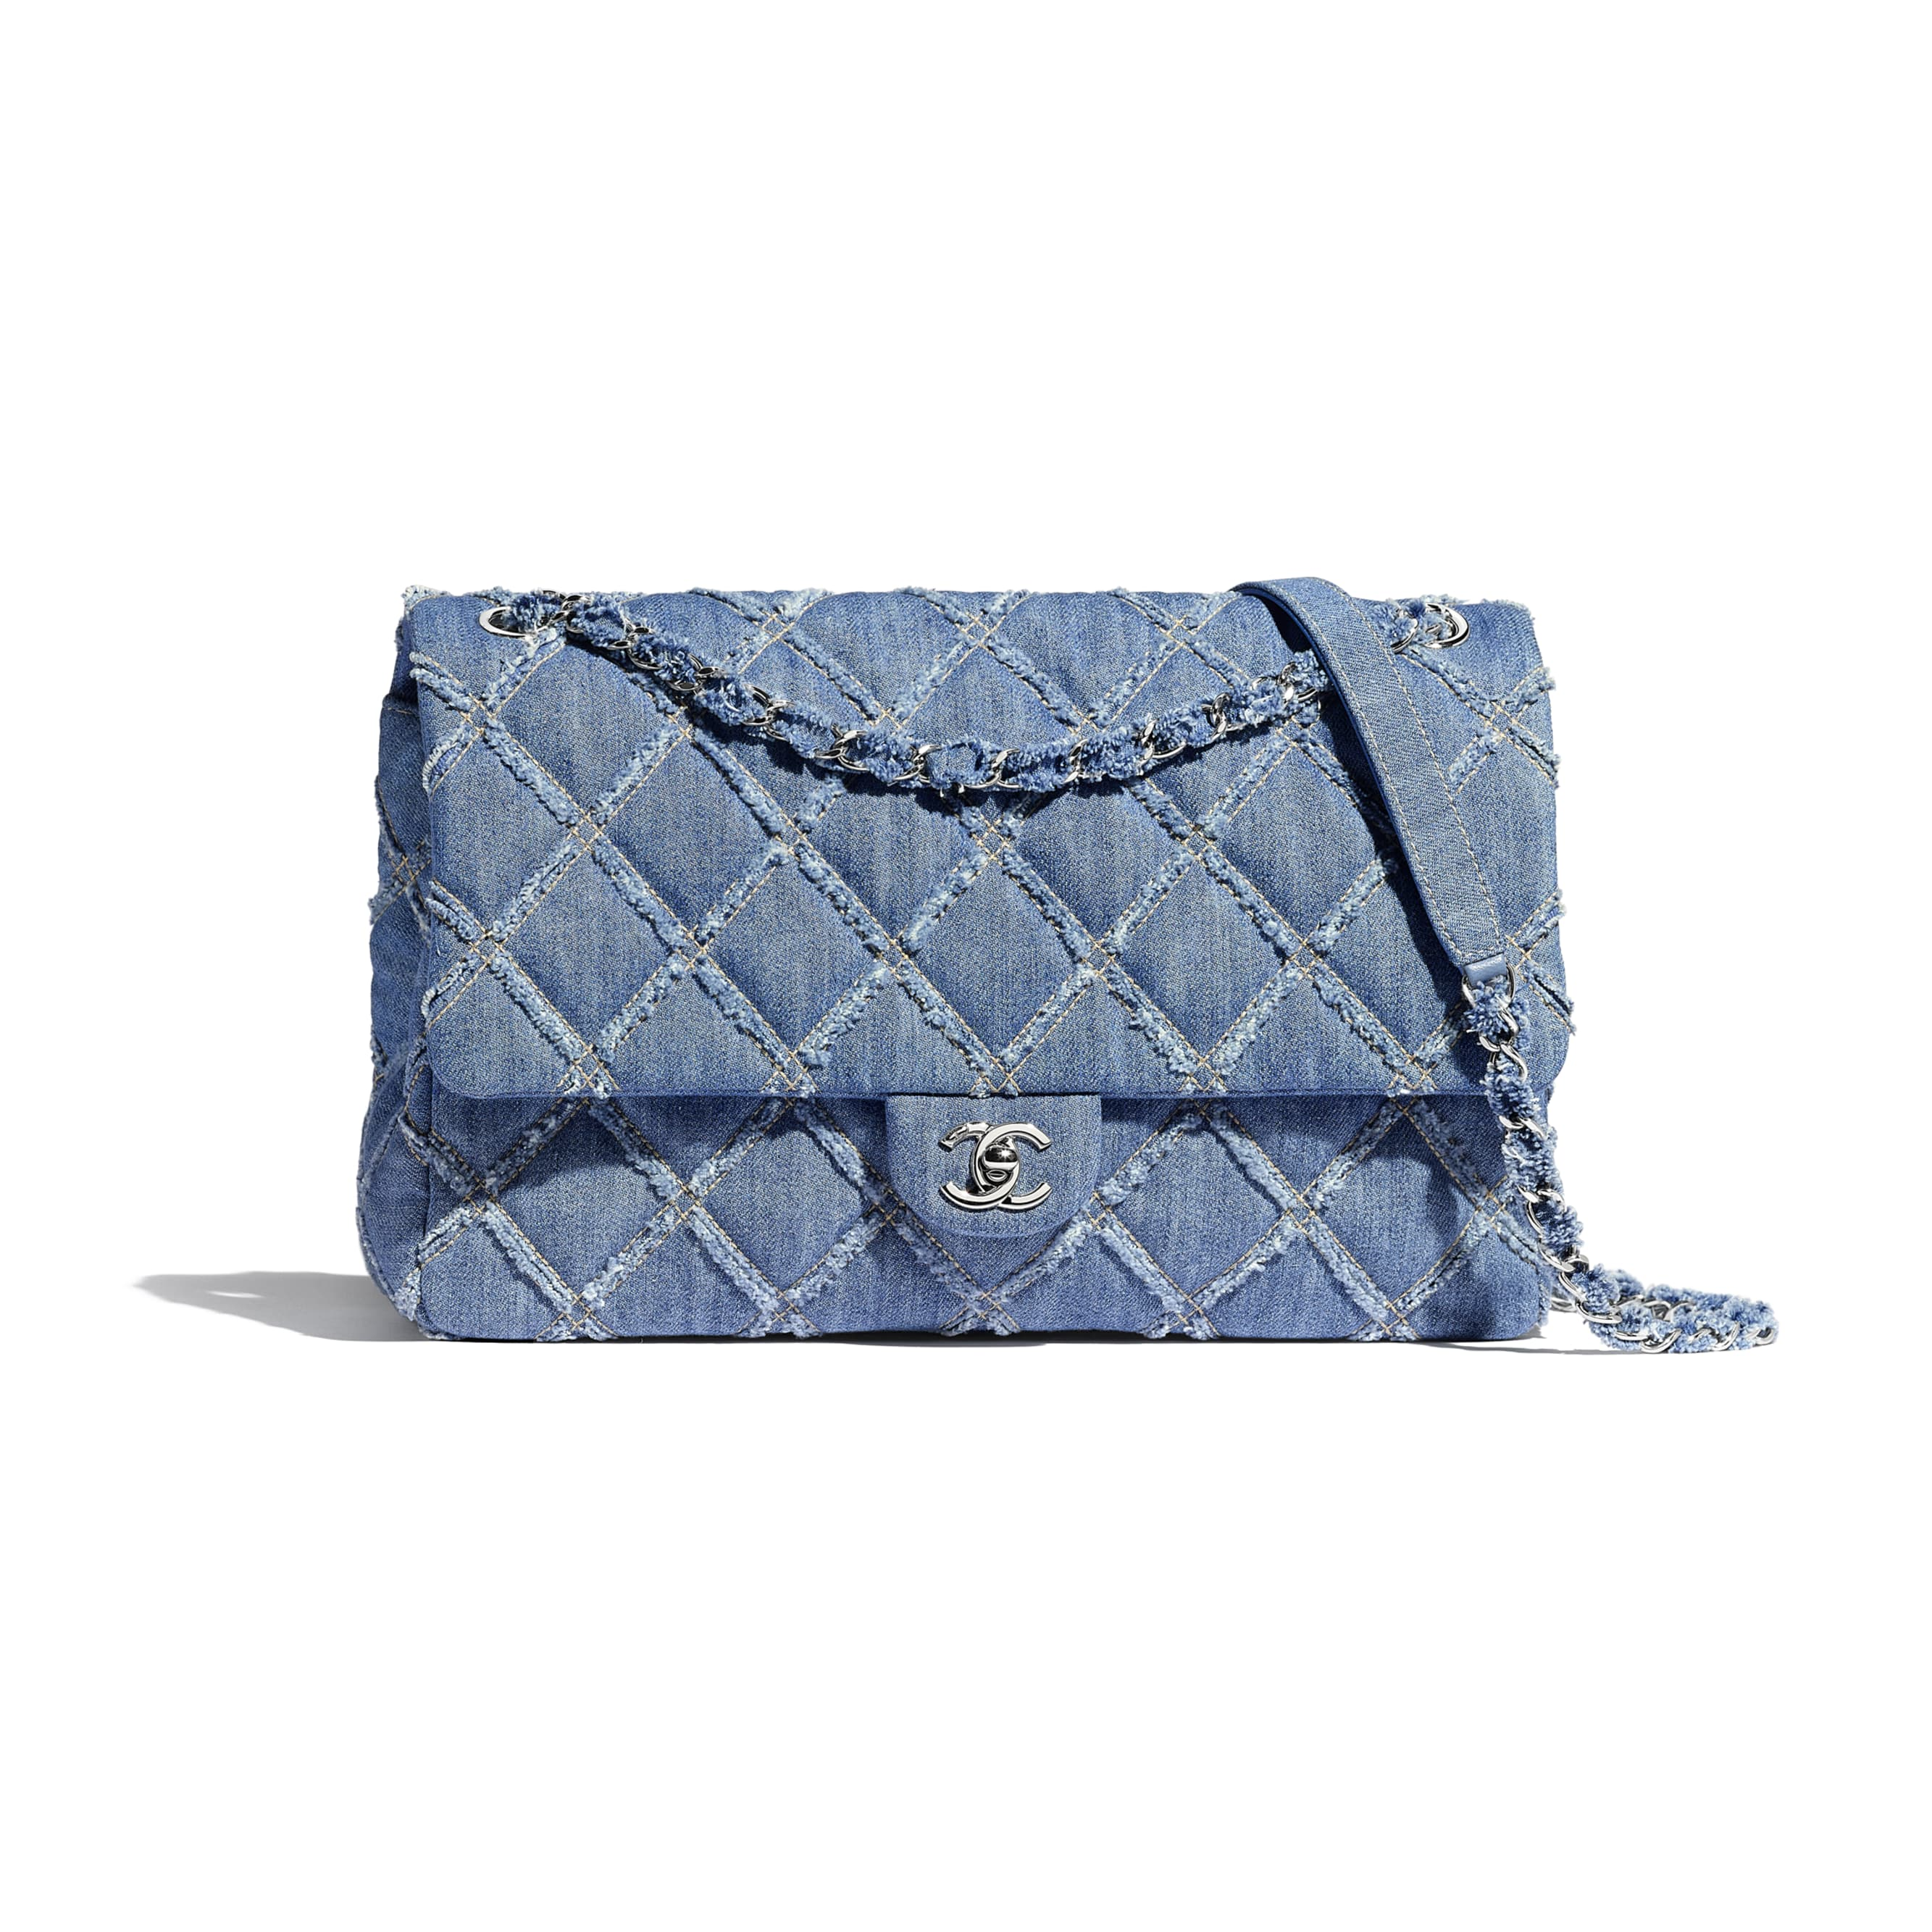 Large Flap Bag - Blue - Denim & Silver-Tone Metal - CHANEL - Default view - see standard sized version